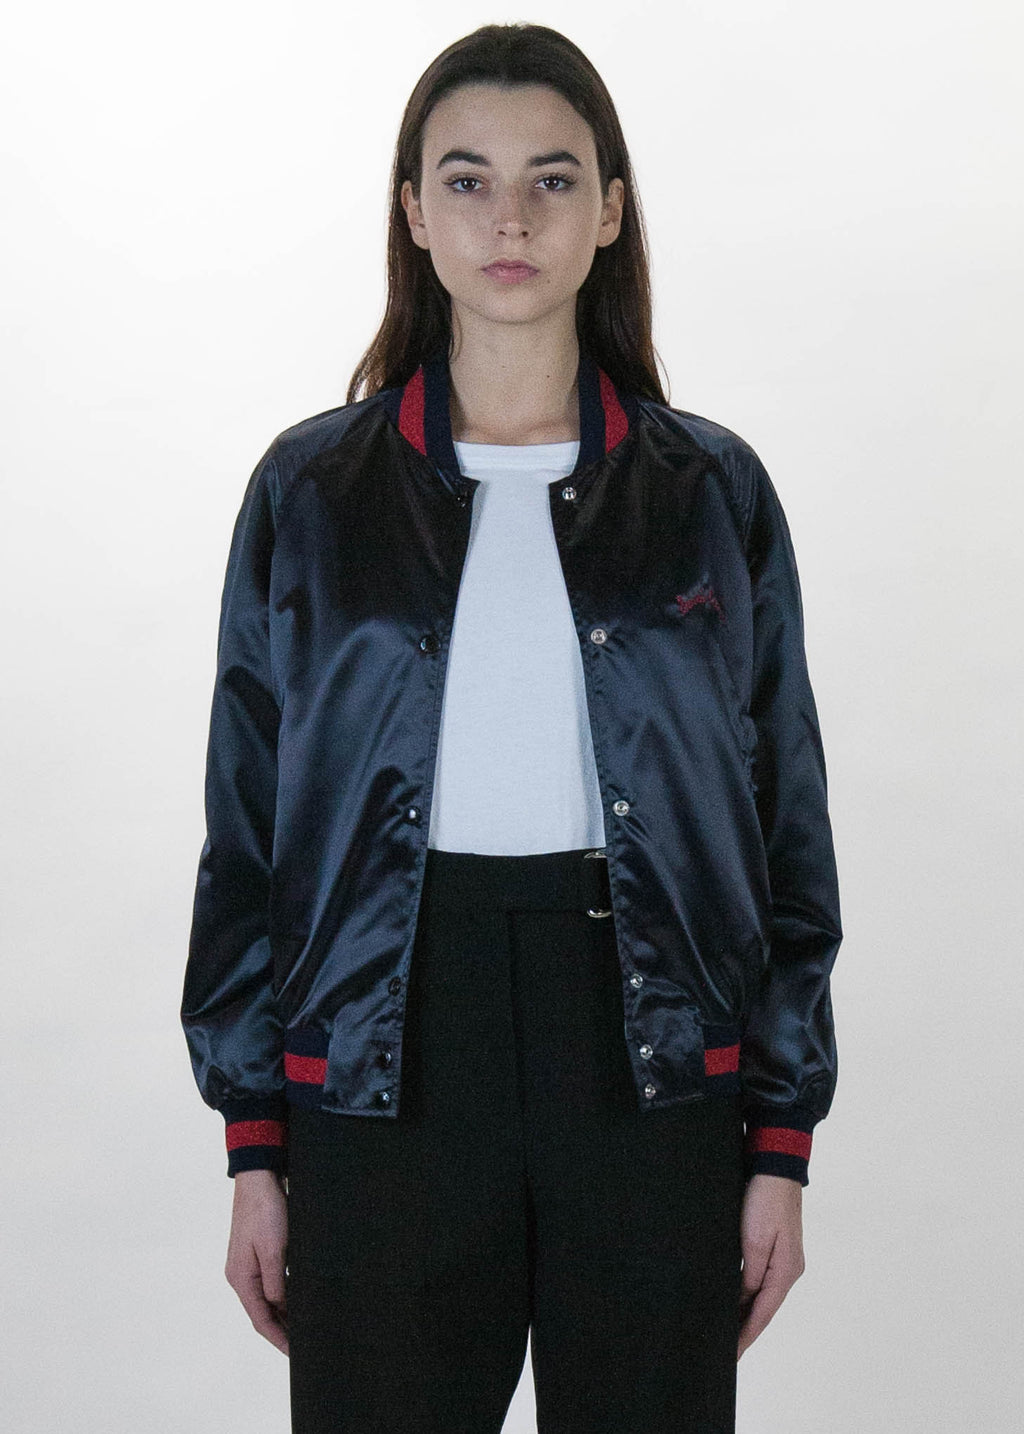 Maison Kitsune, Black Bicolor Satin Teddy Jacket, 017 Shop